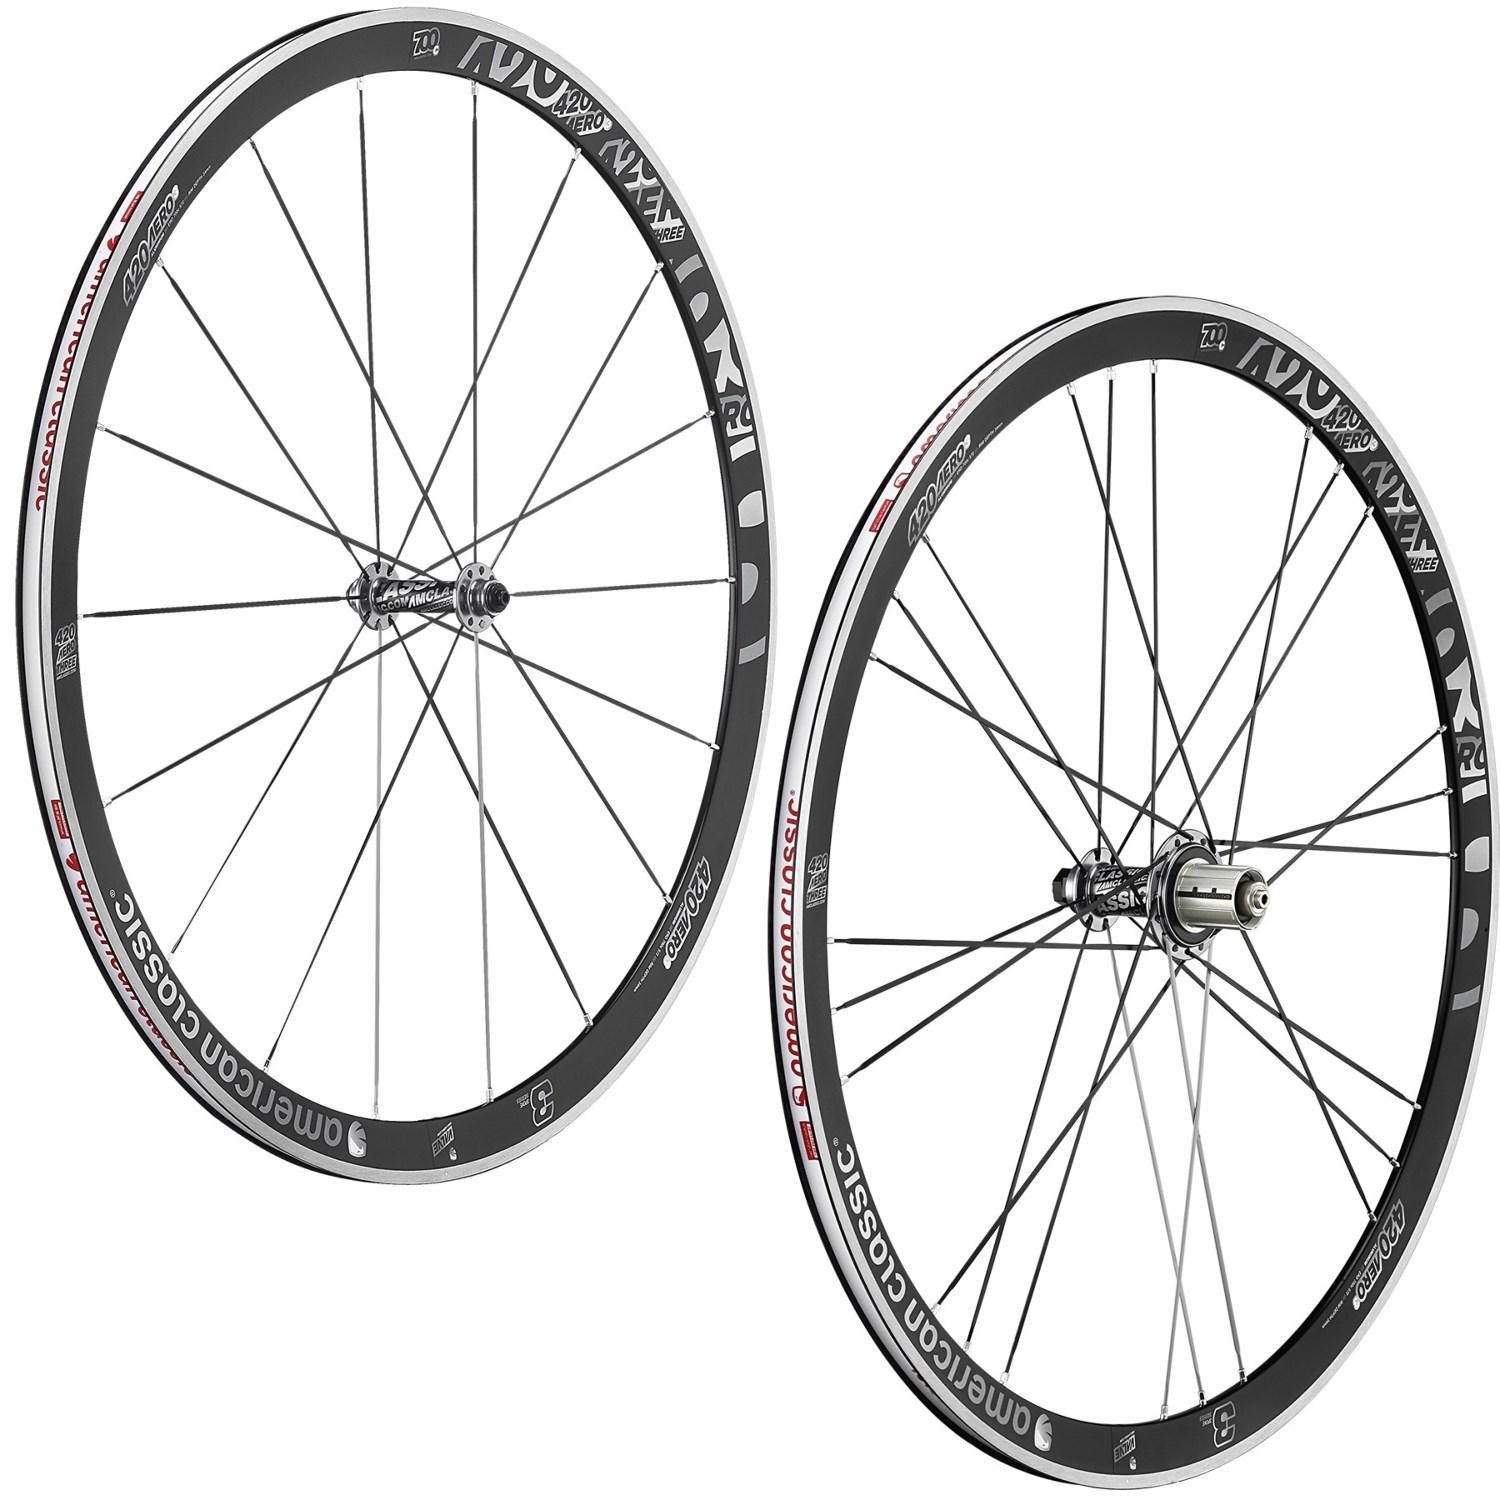 American classic 420 aero 3 road wheelset save 42 for American classic 3